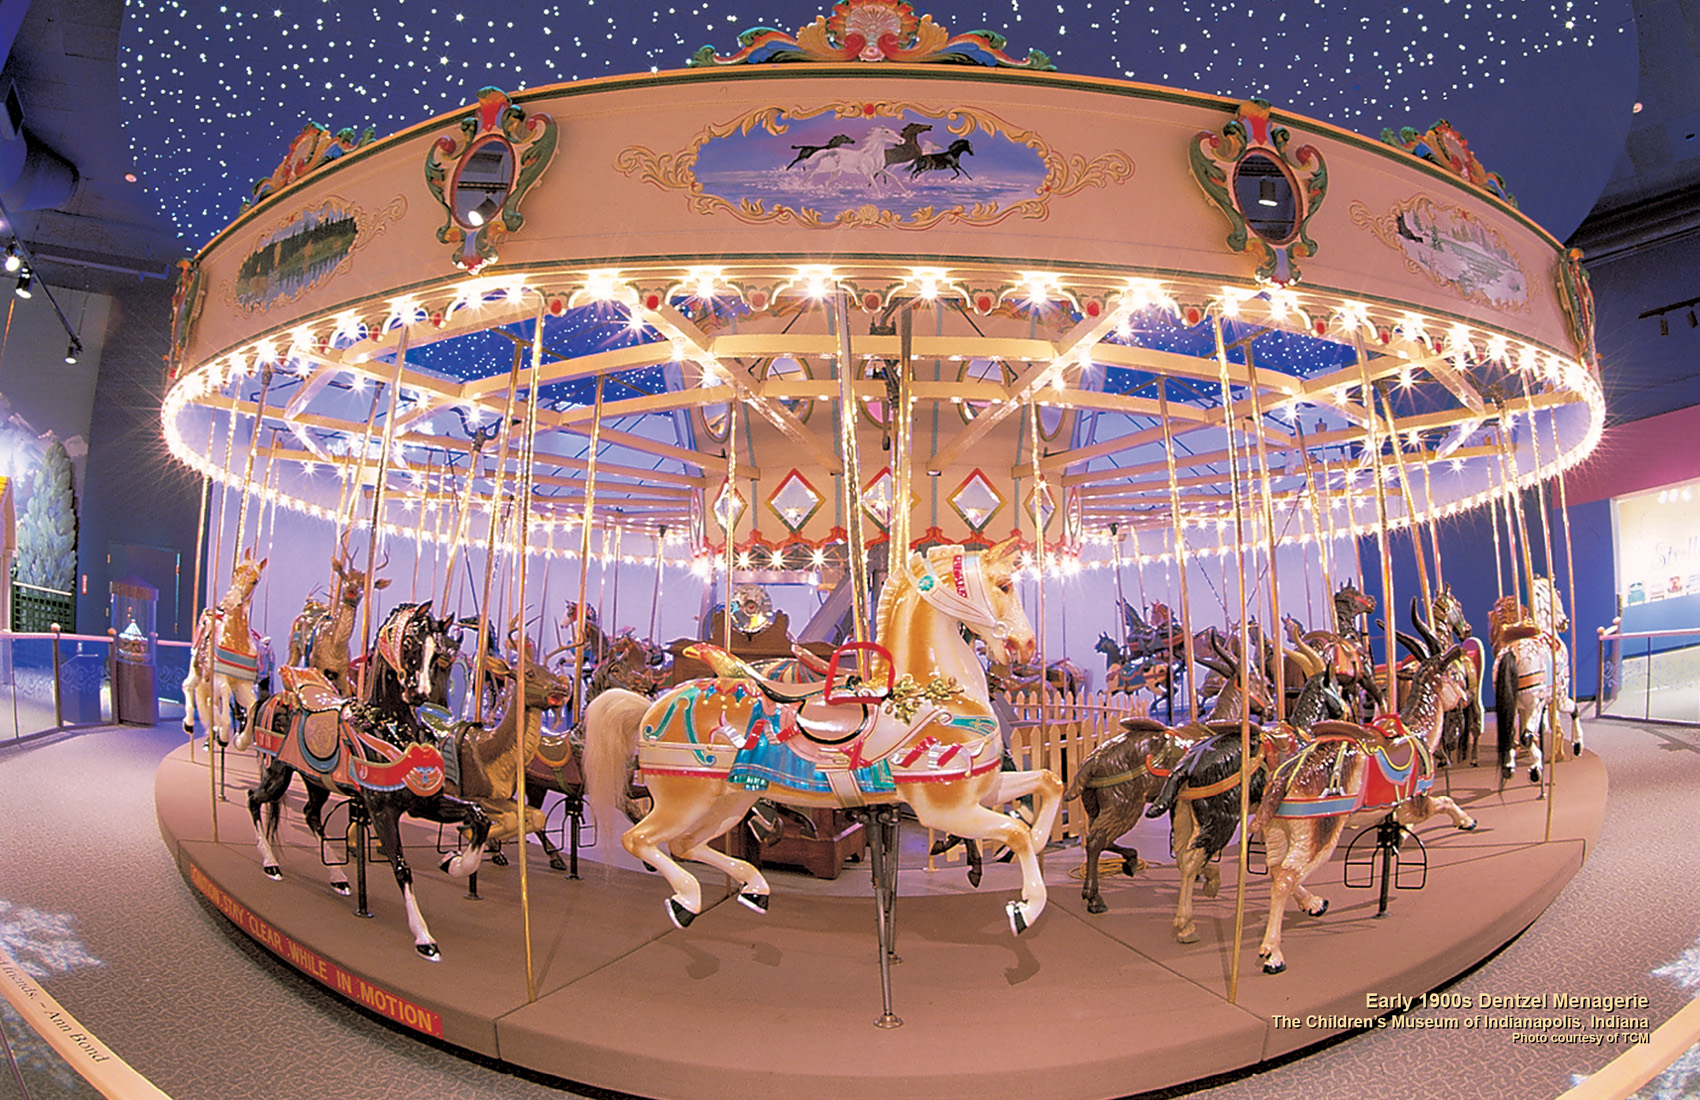 Historic-Dentzel-carousel-Childrens-Museum-Indianapolis-IN-CNT_AUG_10